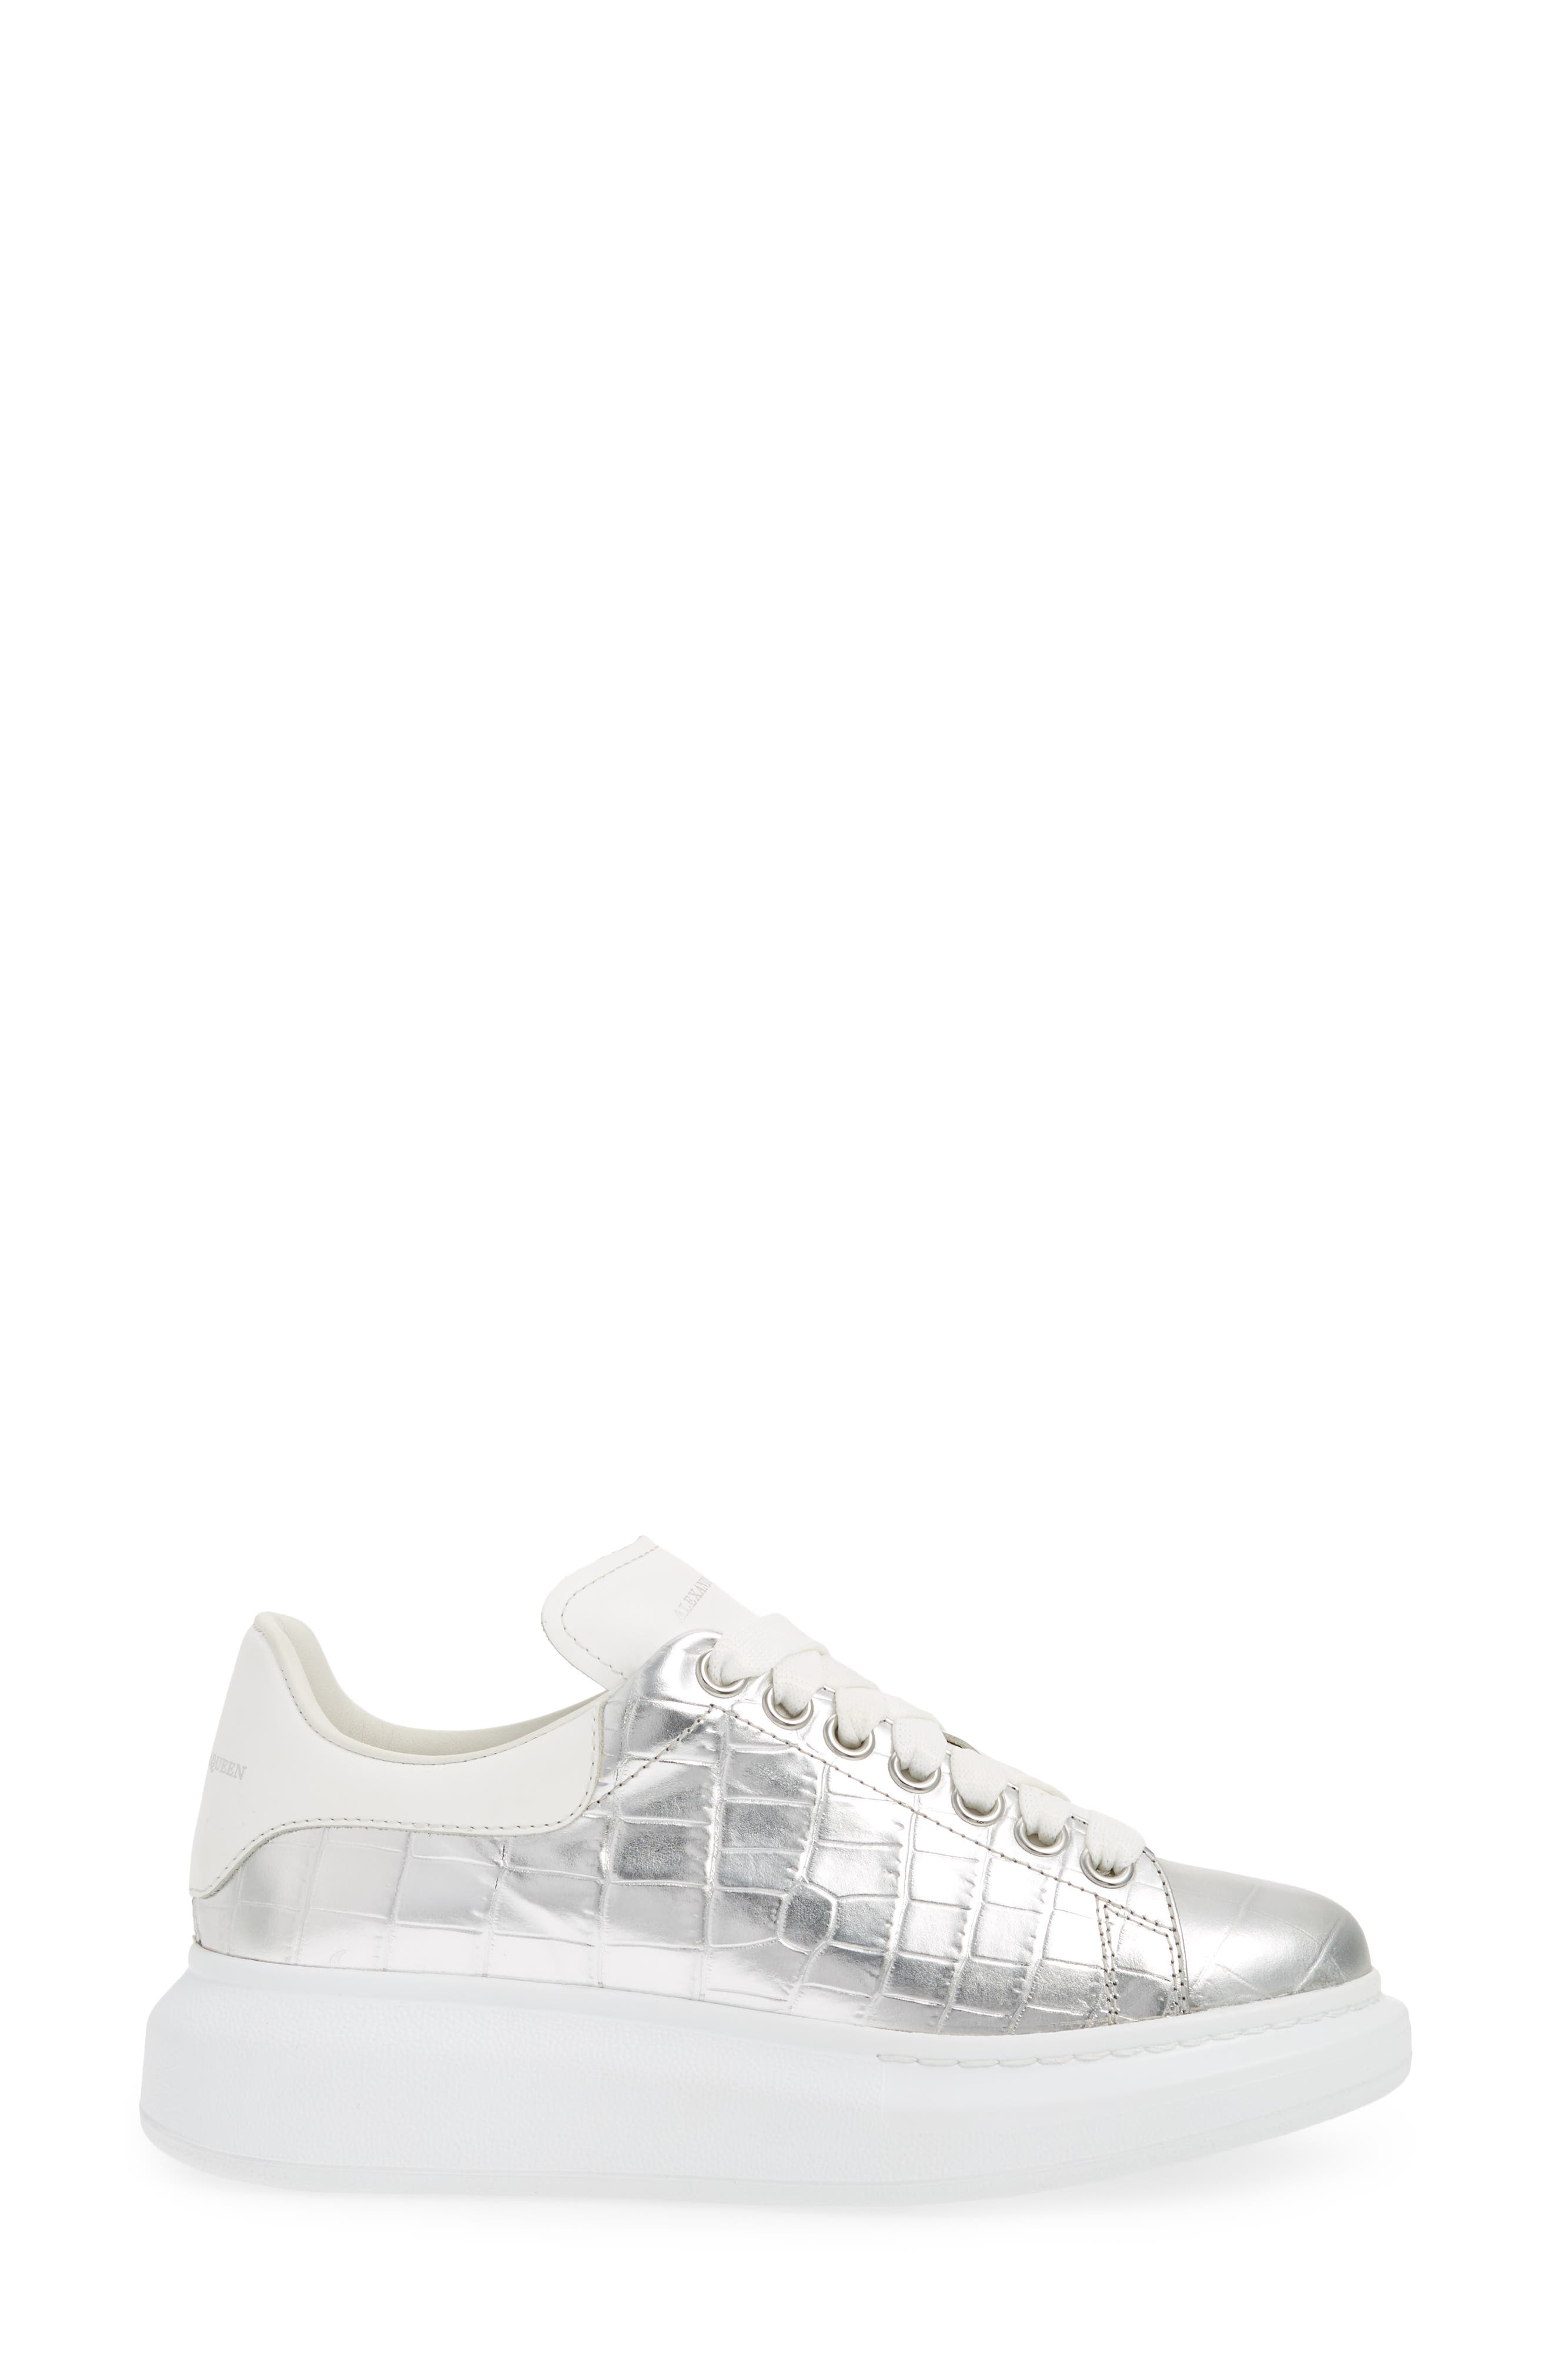 Croc Embossed Lace-Up Sneaker,                             Alternate thumbnail 3, color,                             Metallic Silver